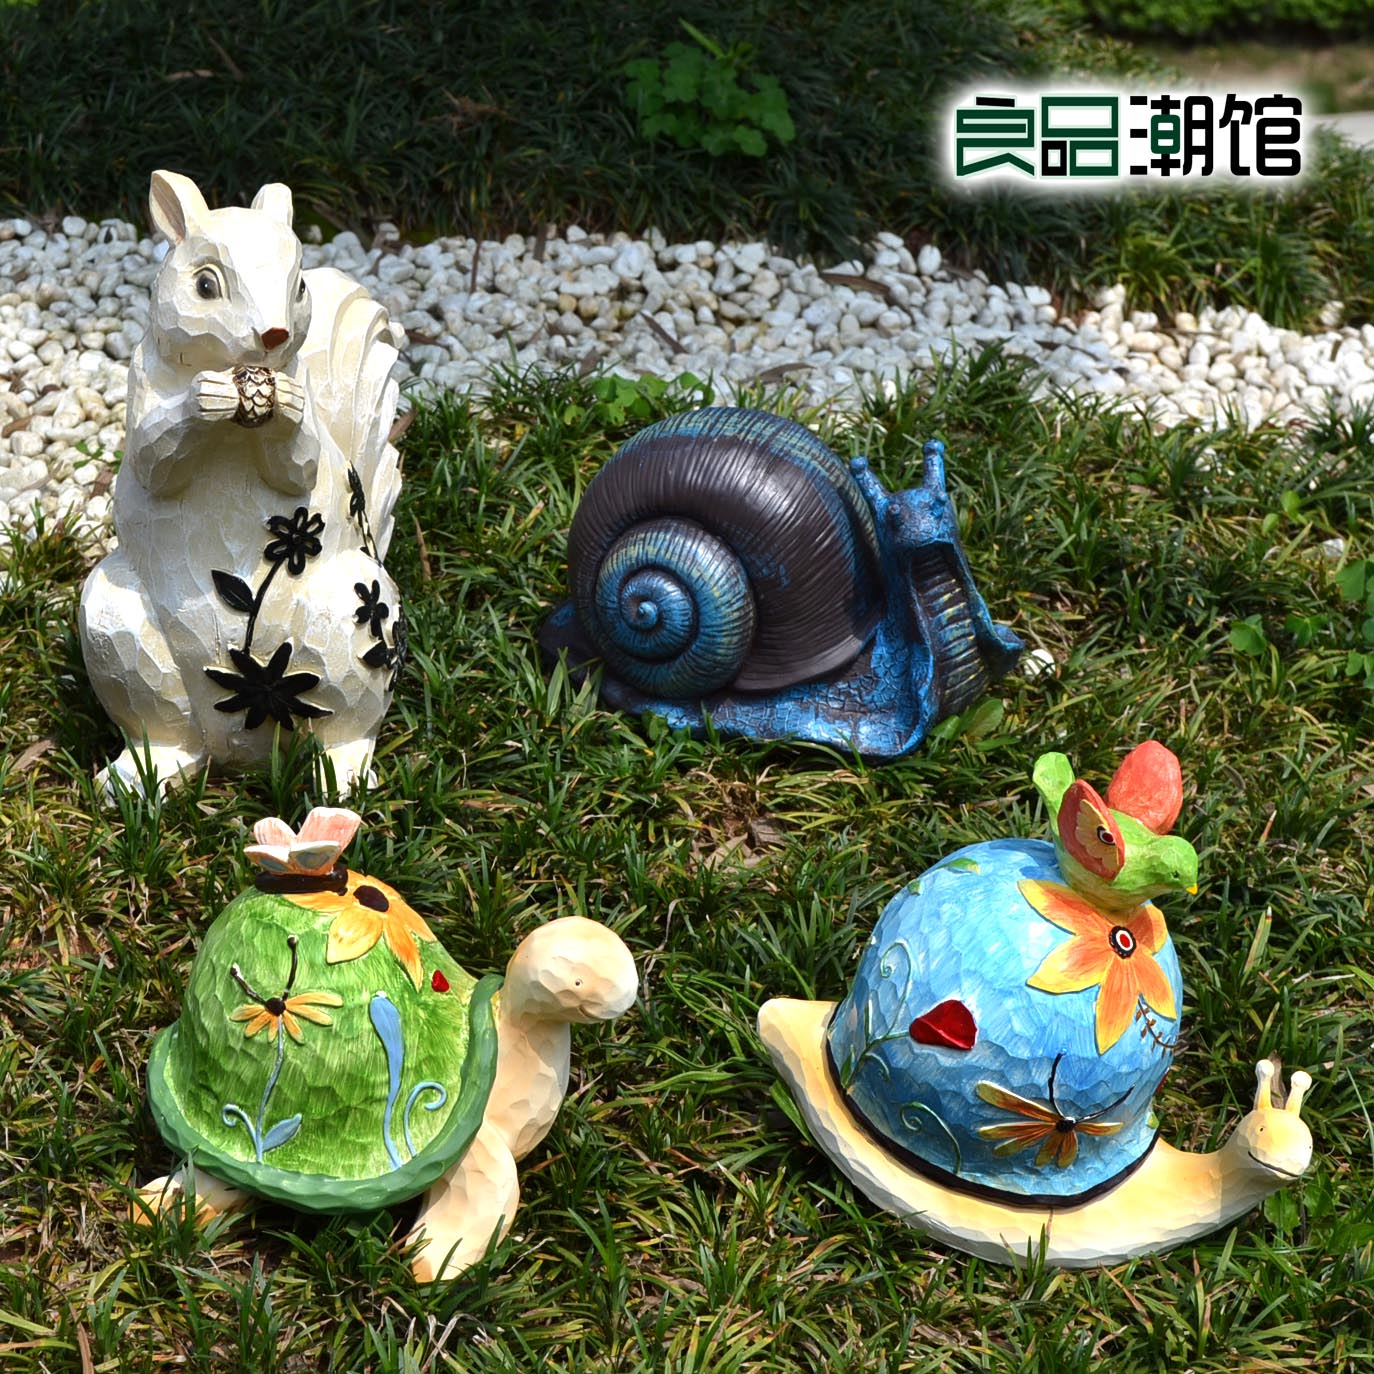 Villa courtyard garden nursery decor outdoor sculpture garden pine squirrel cartoon snail turtle landscaping ornaments